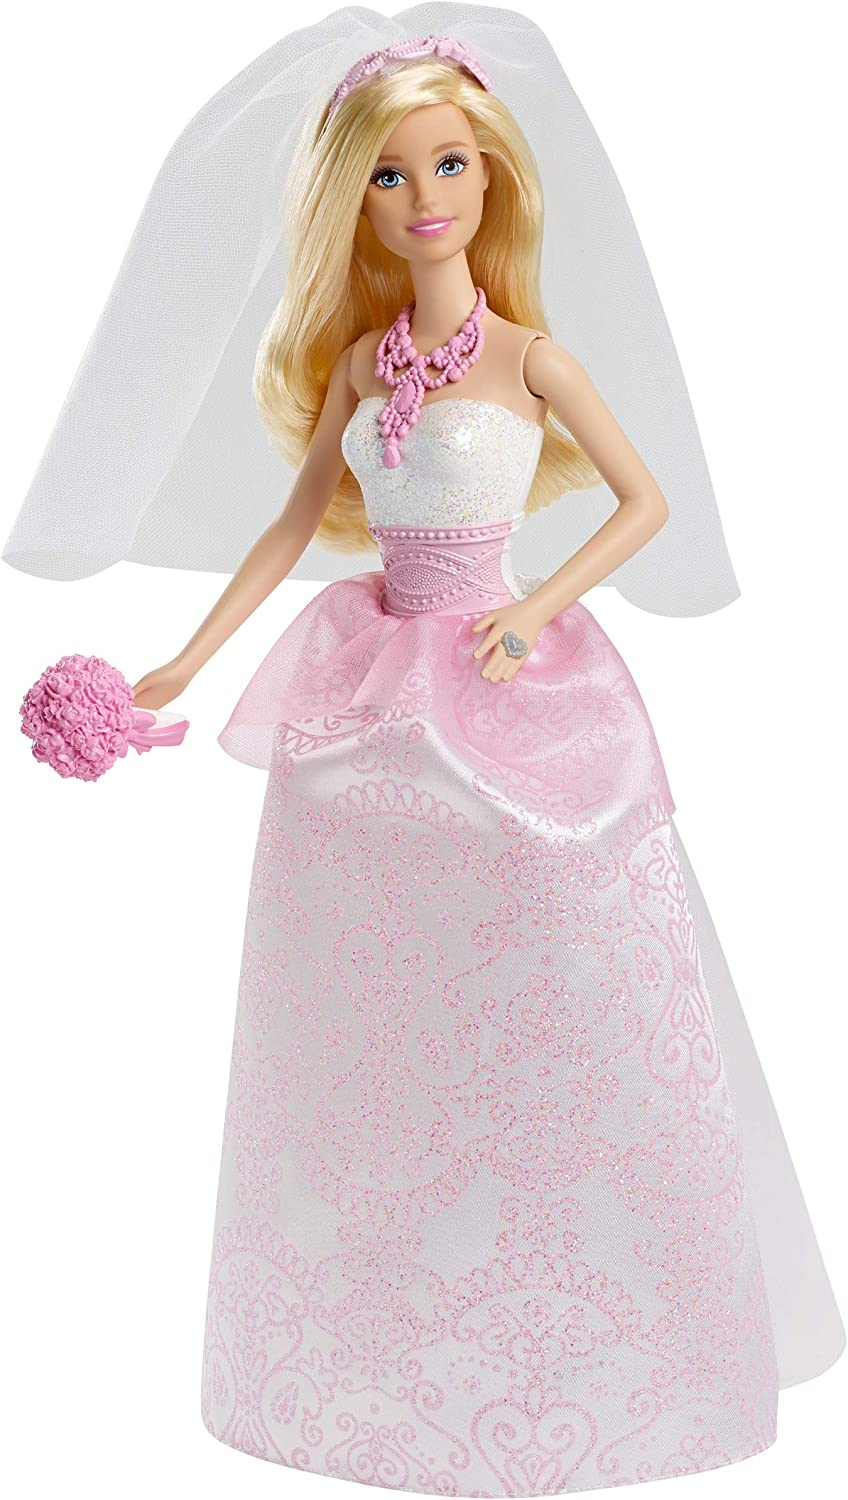 Barbie Bride Doll in White and Pink Dress with Veil and Bouquet